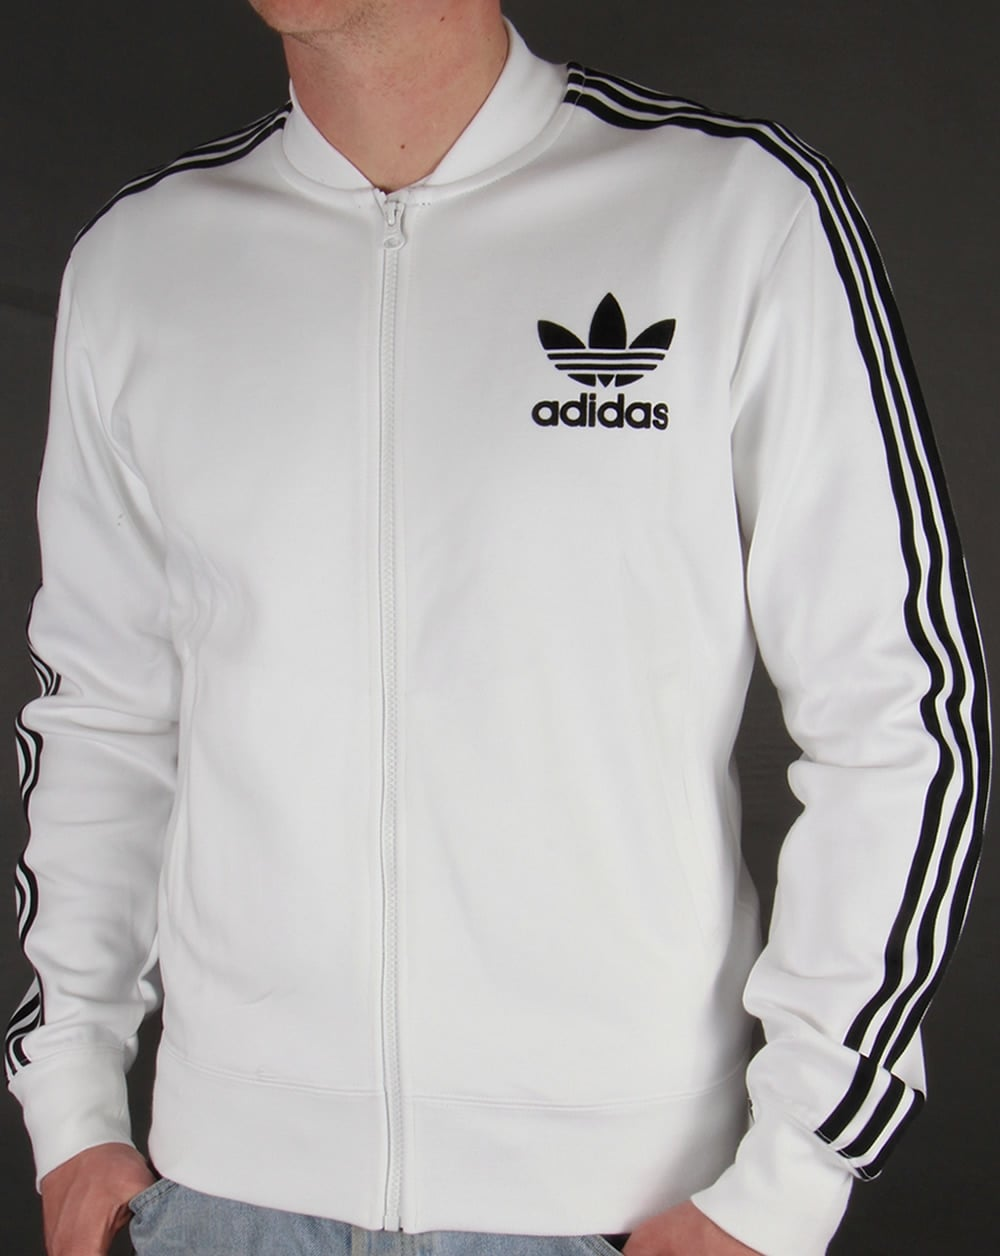 Adidas Originals Superstar Track Top White Black